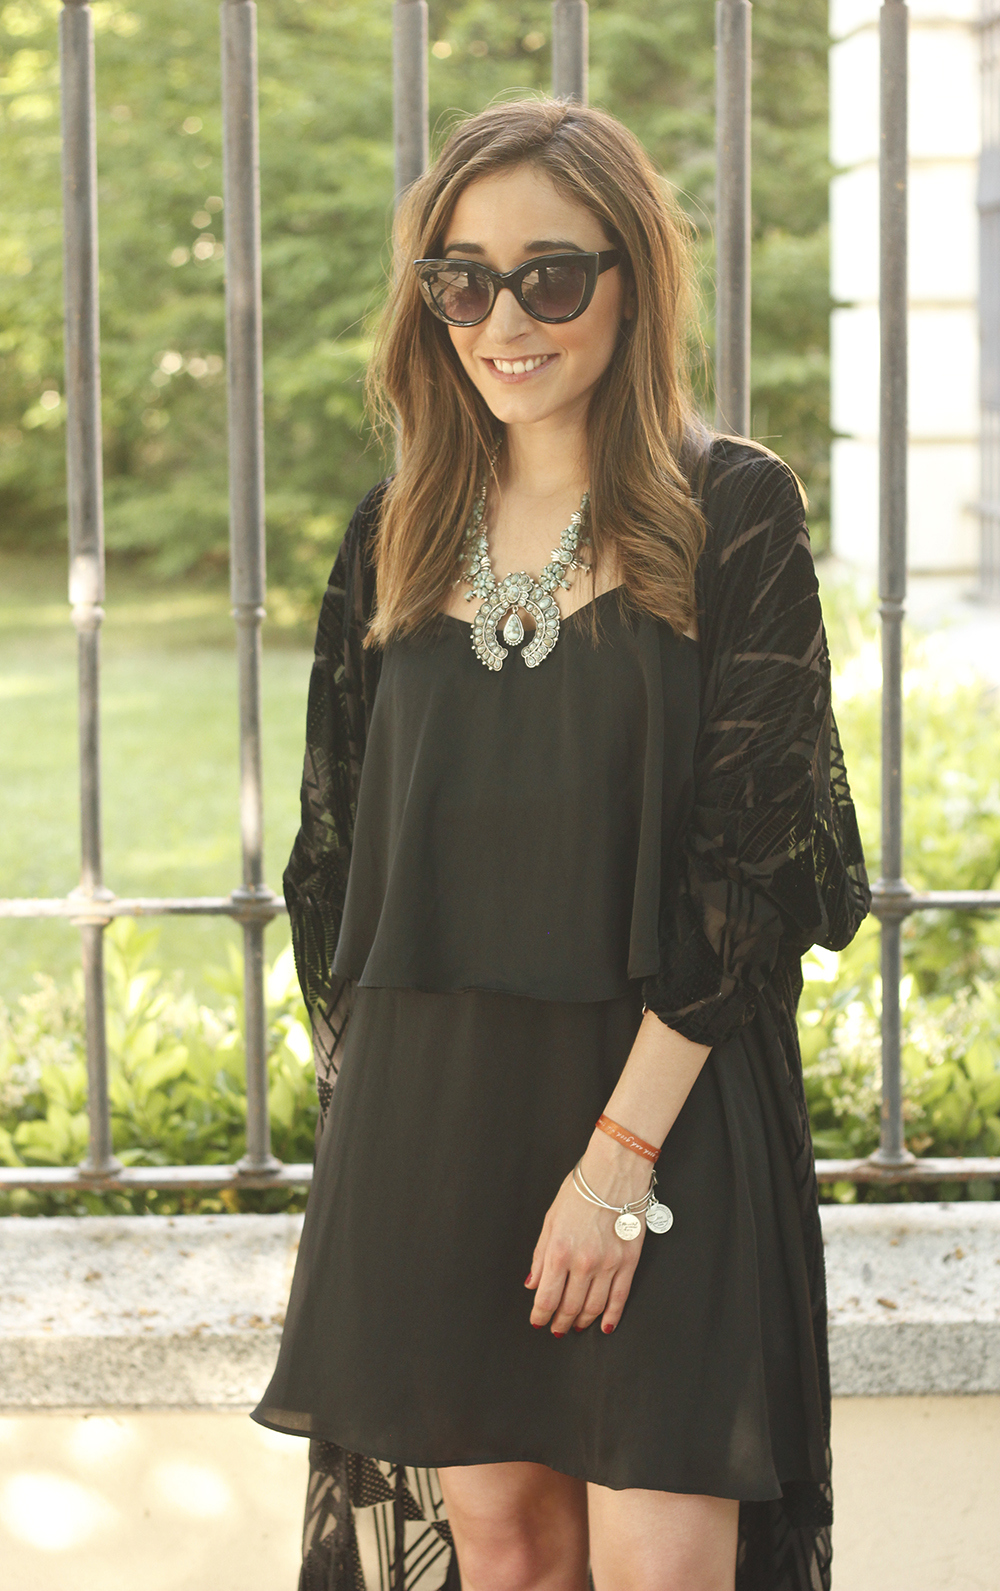 black kimono and black dress sandals accessories summer outfit style fashion sunnies10